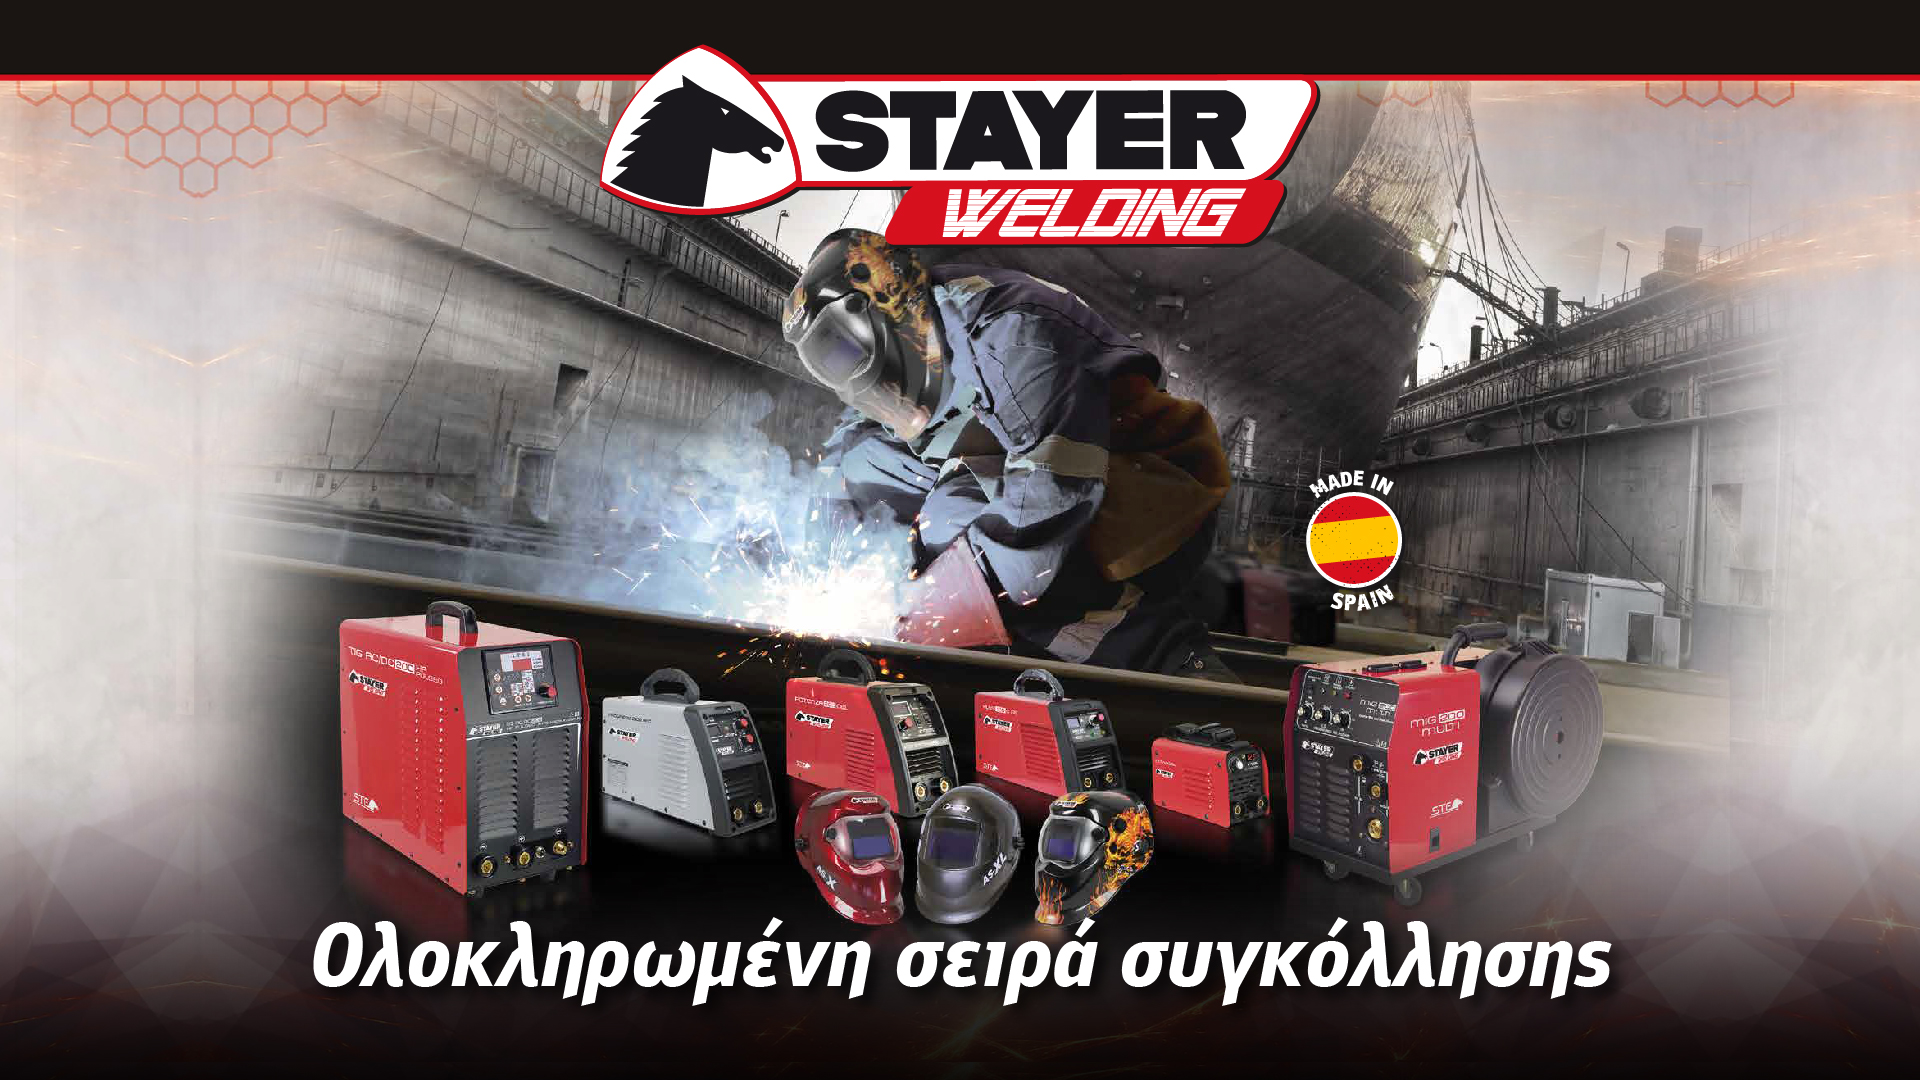 STAYER_WELDING_CITYWORK_WEBBANNER_1920x1080-01